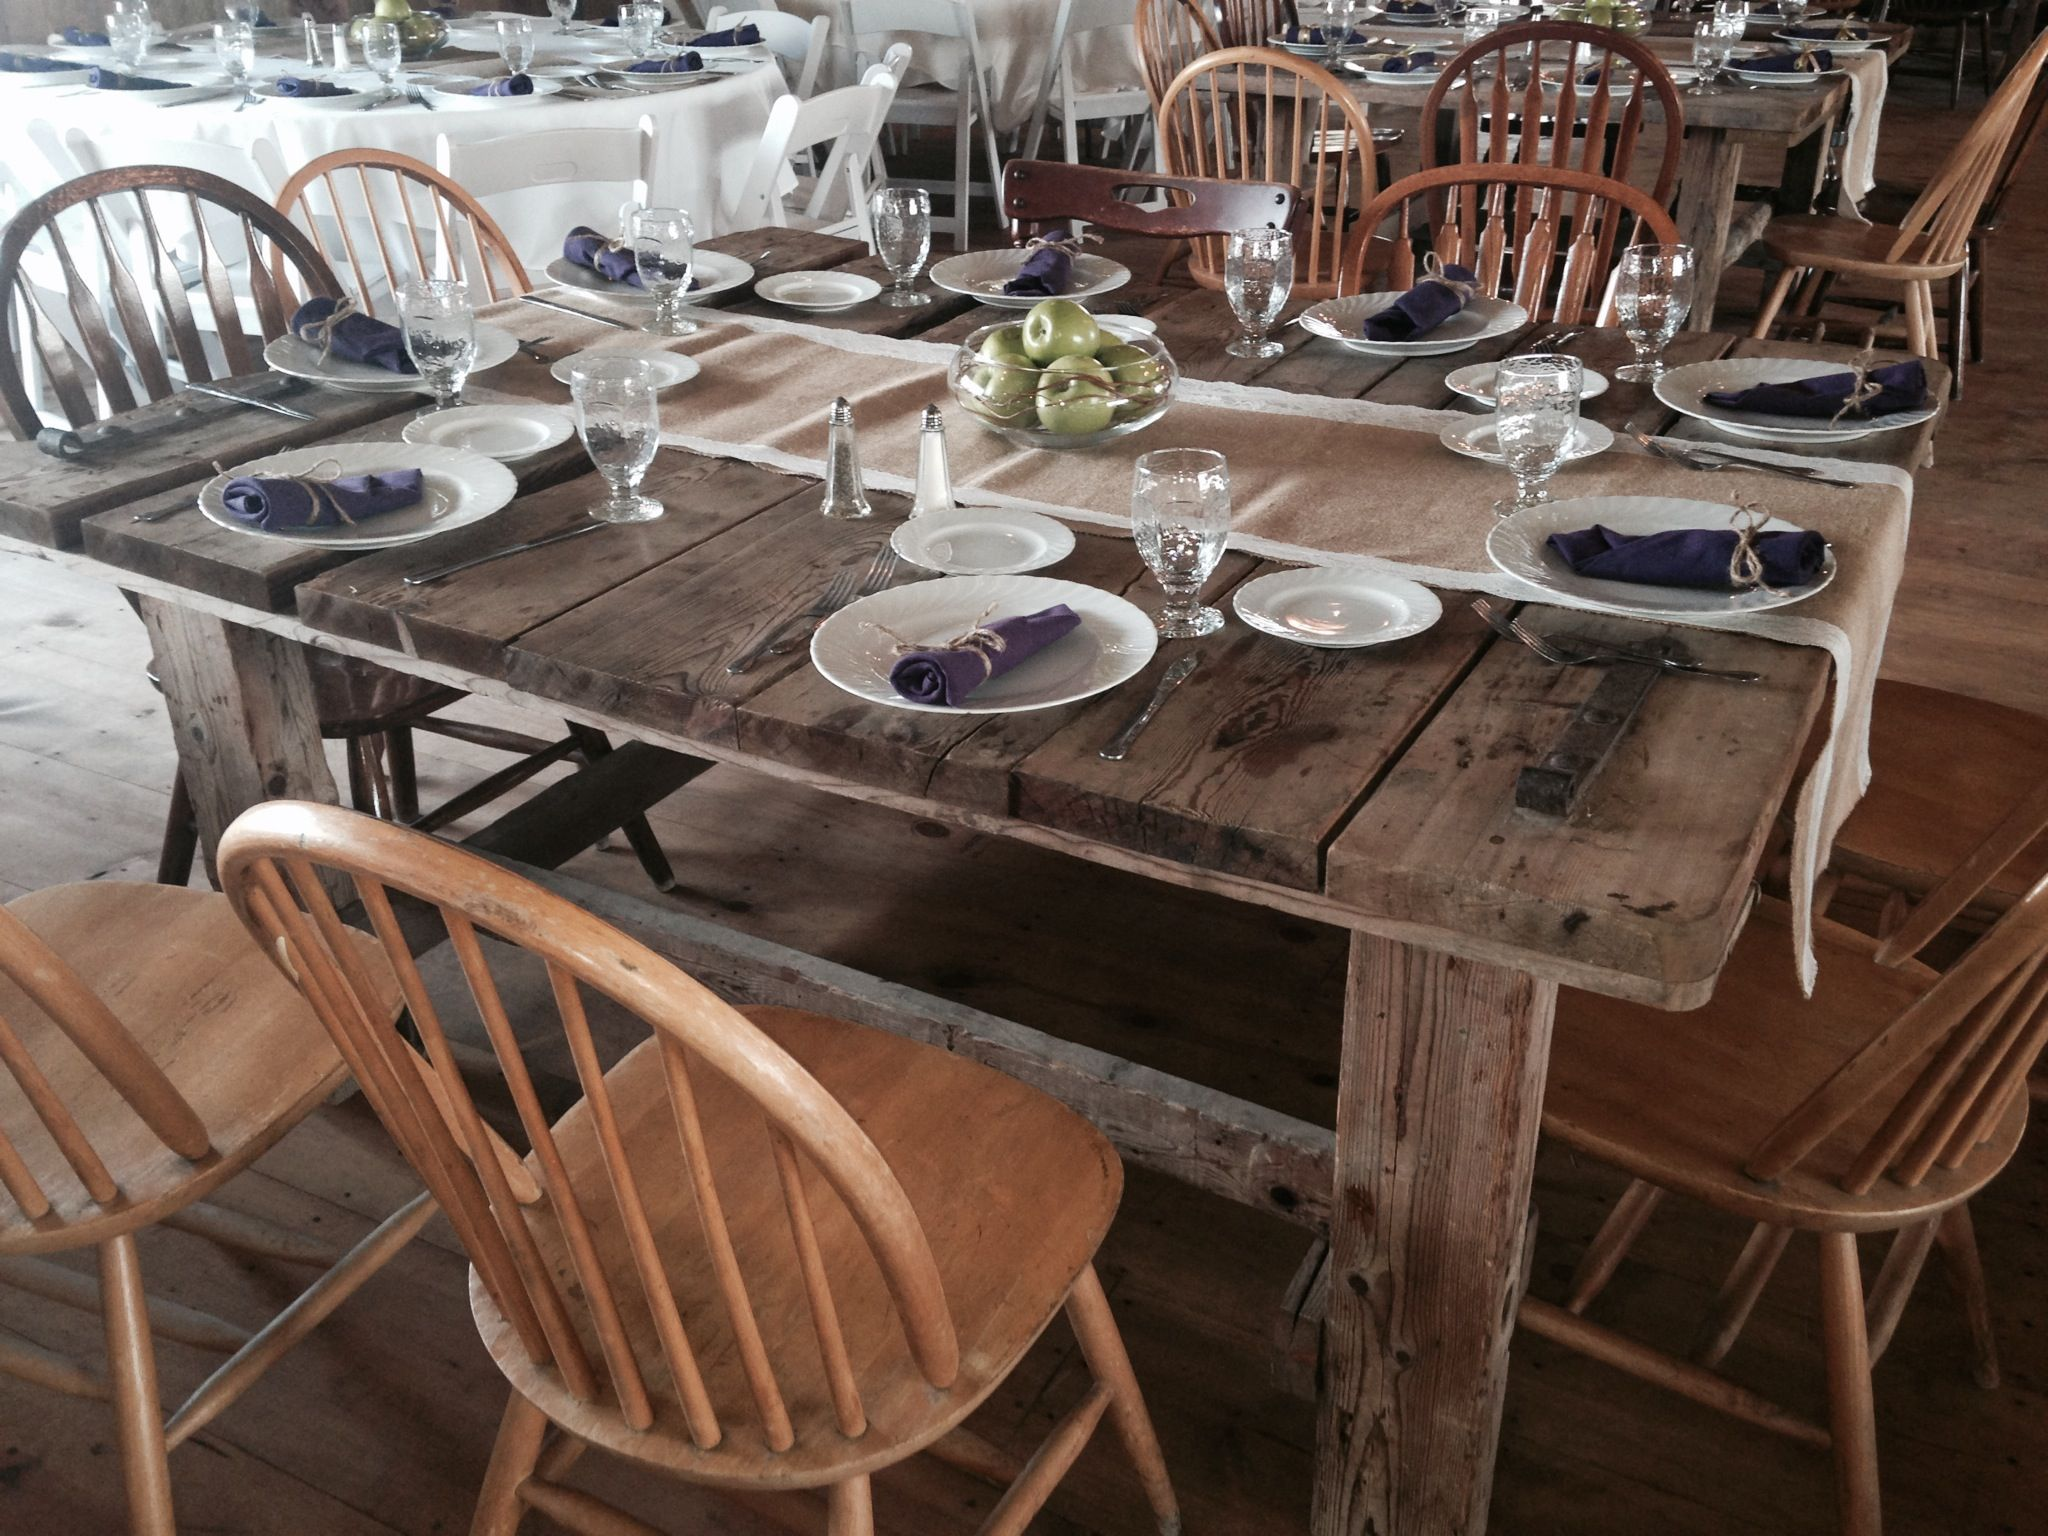 Wood Tables Setup For Family Style Dinner Table Rustic Dining